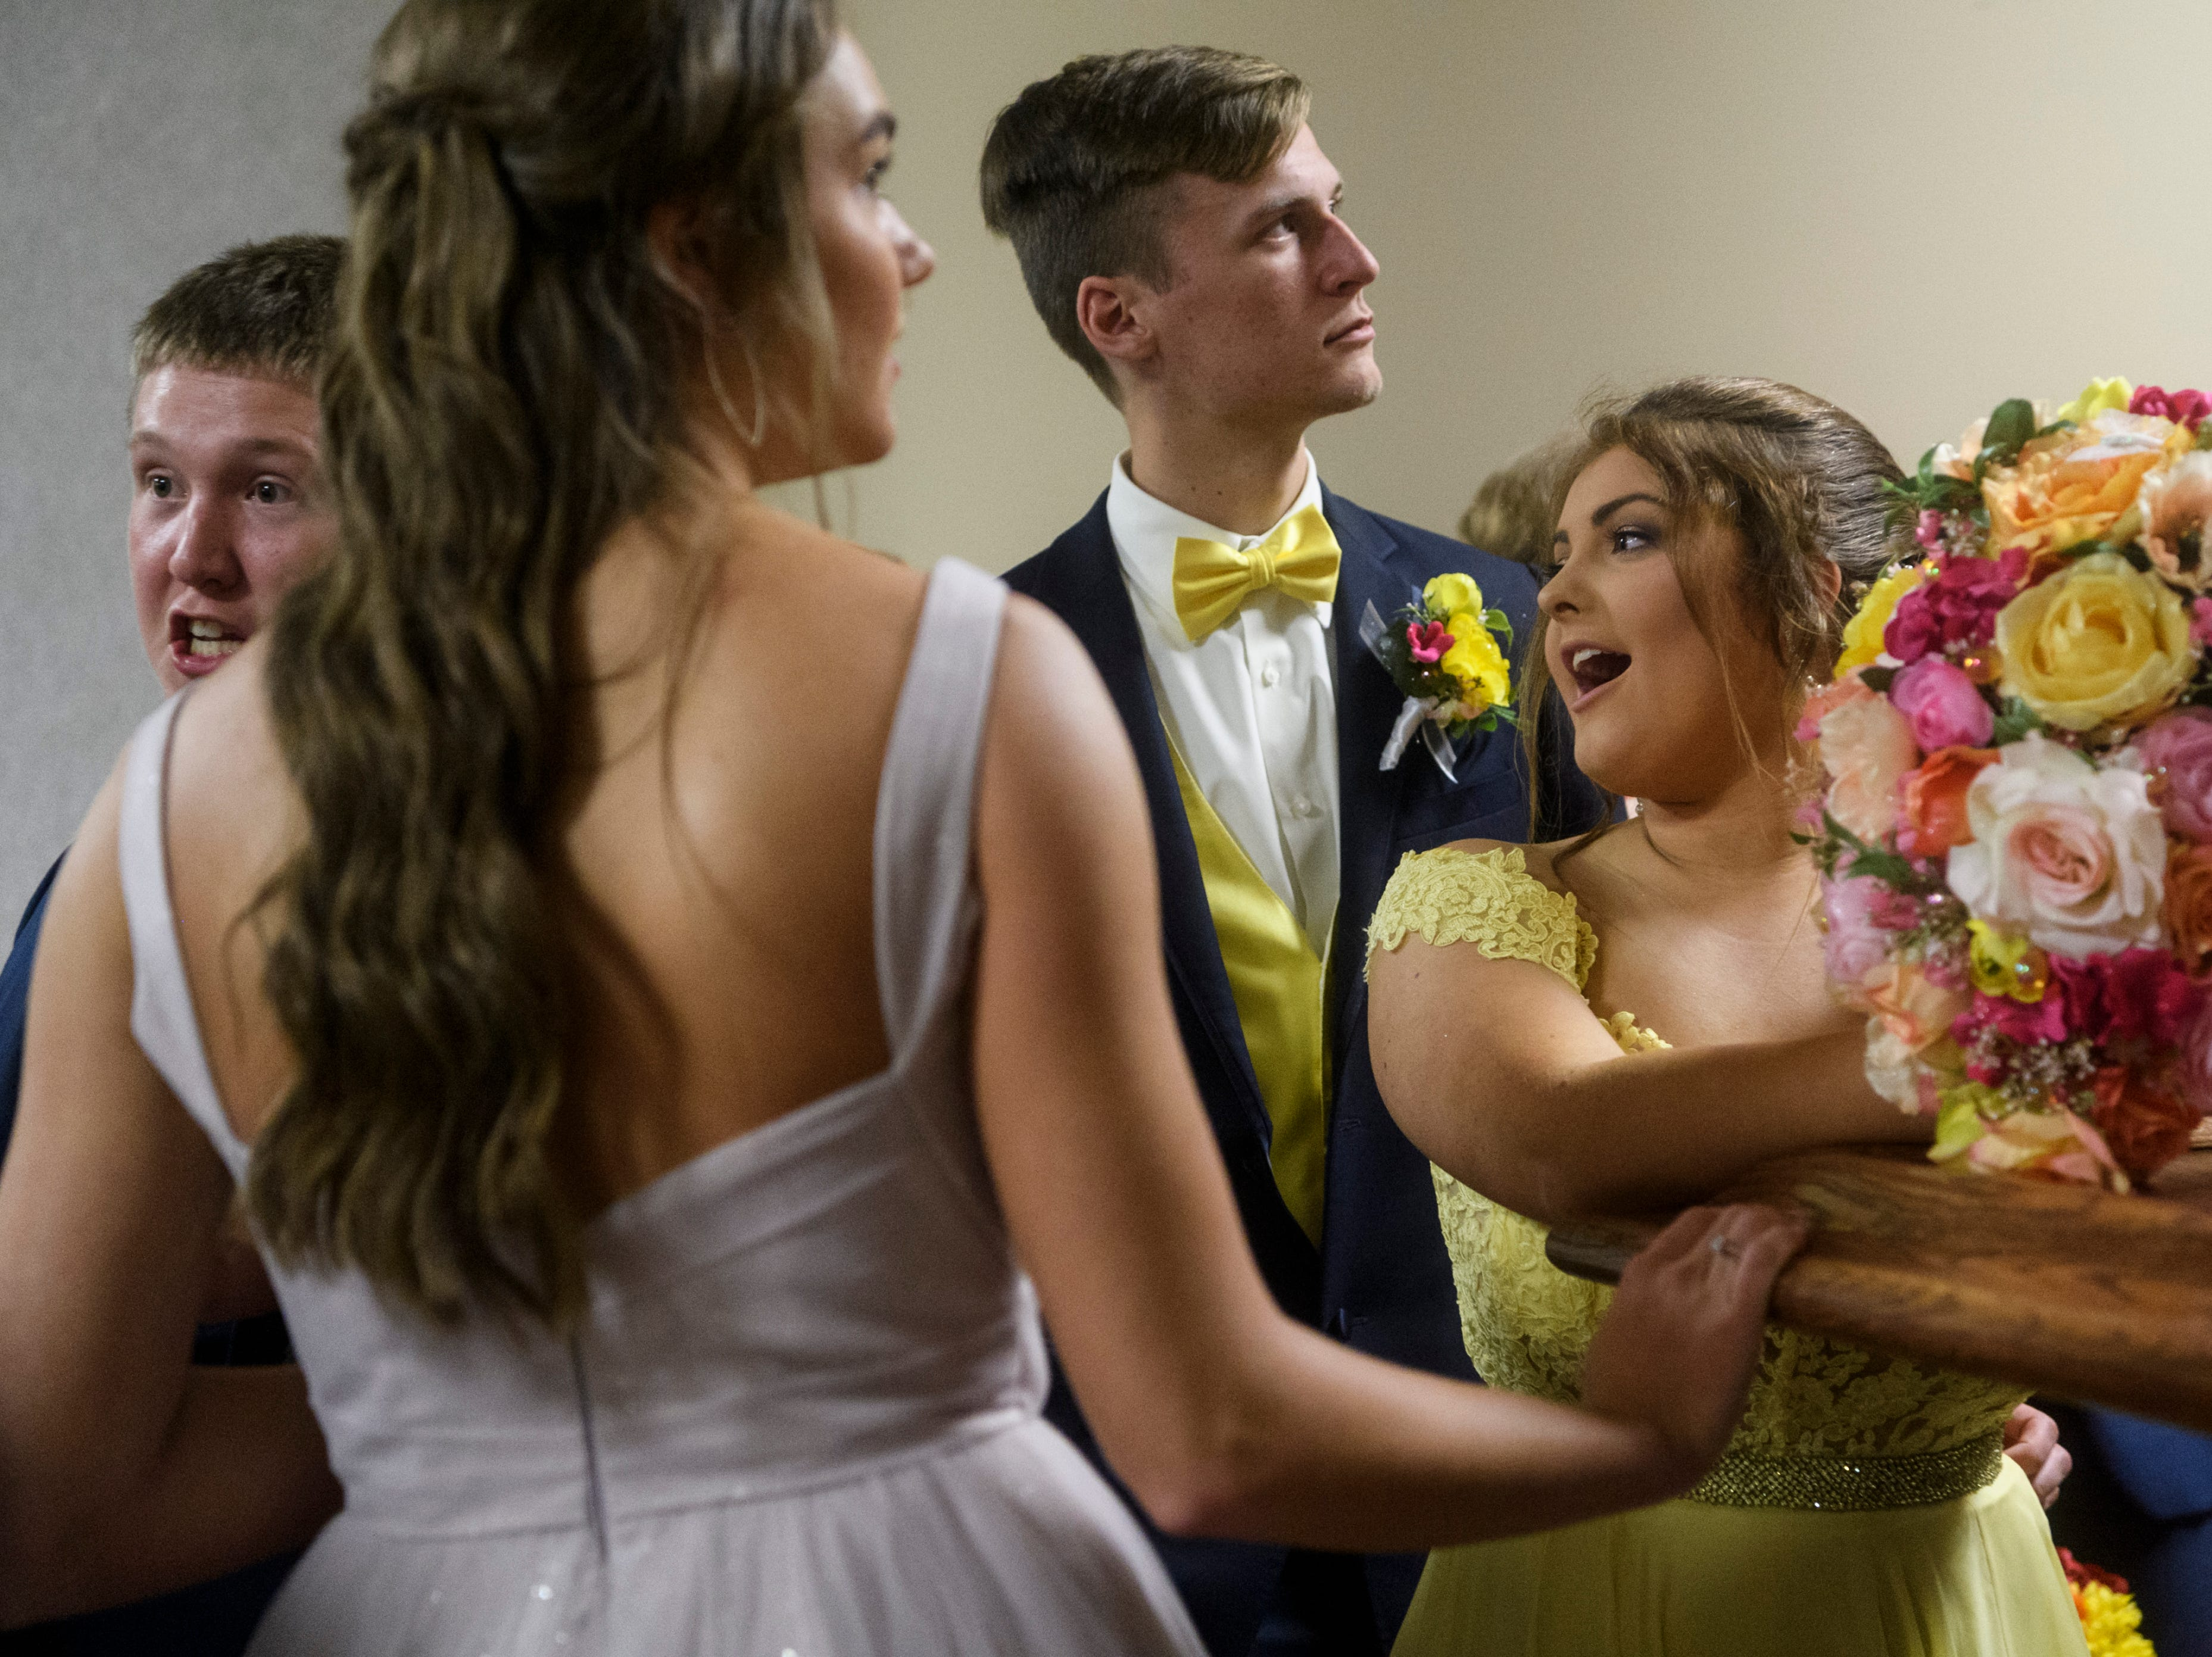 """North Posey students wait in line for the beginning of the """"Grand March"""" where they are introduced one by one and paraded around in front of family and friends before starting prom at the Ribeyre Center in New Harmony, Ind., Saturday, May 4, 2019."""